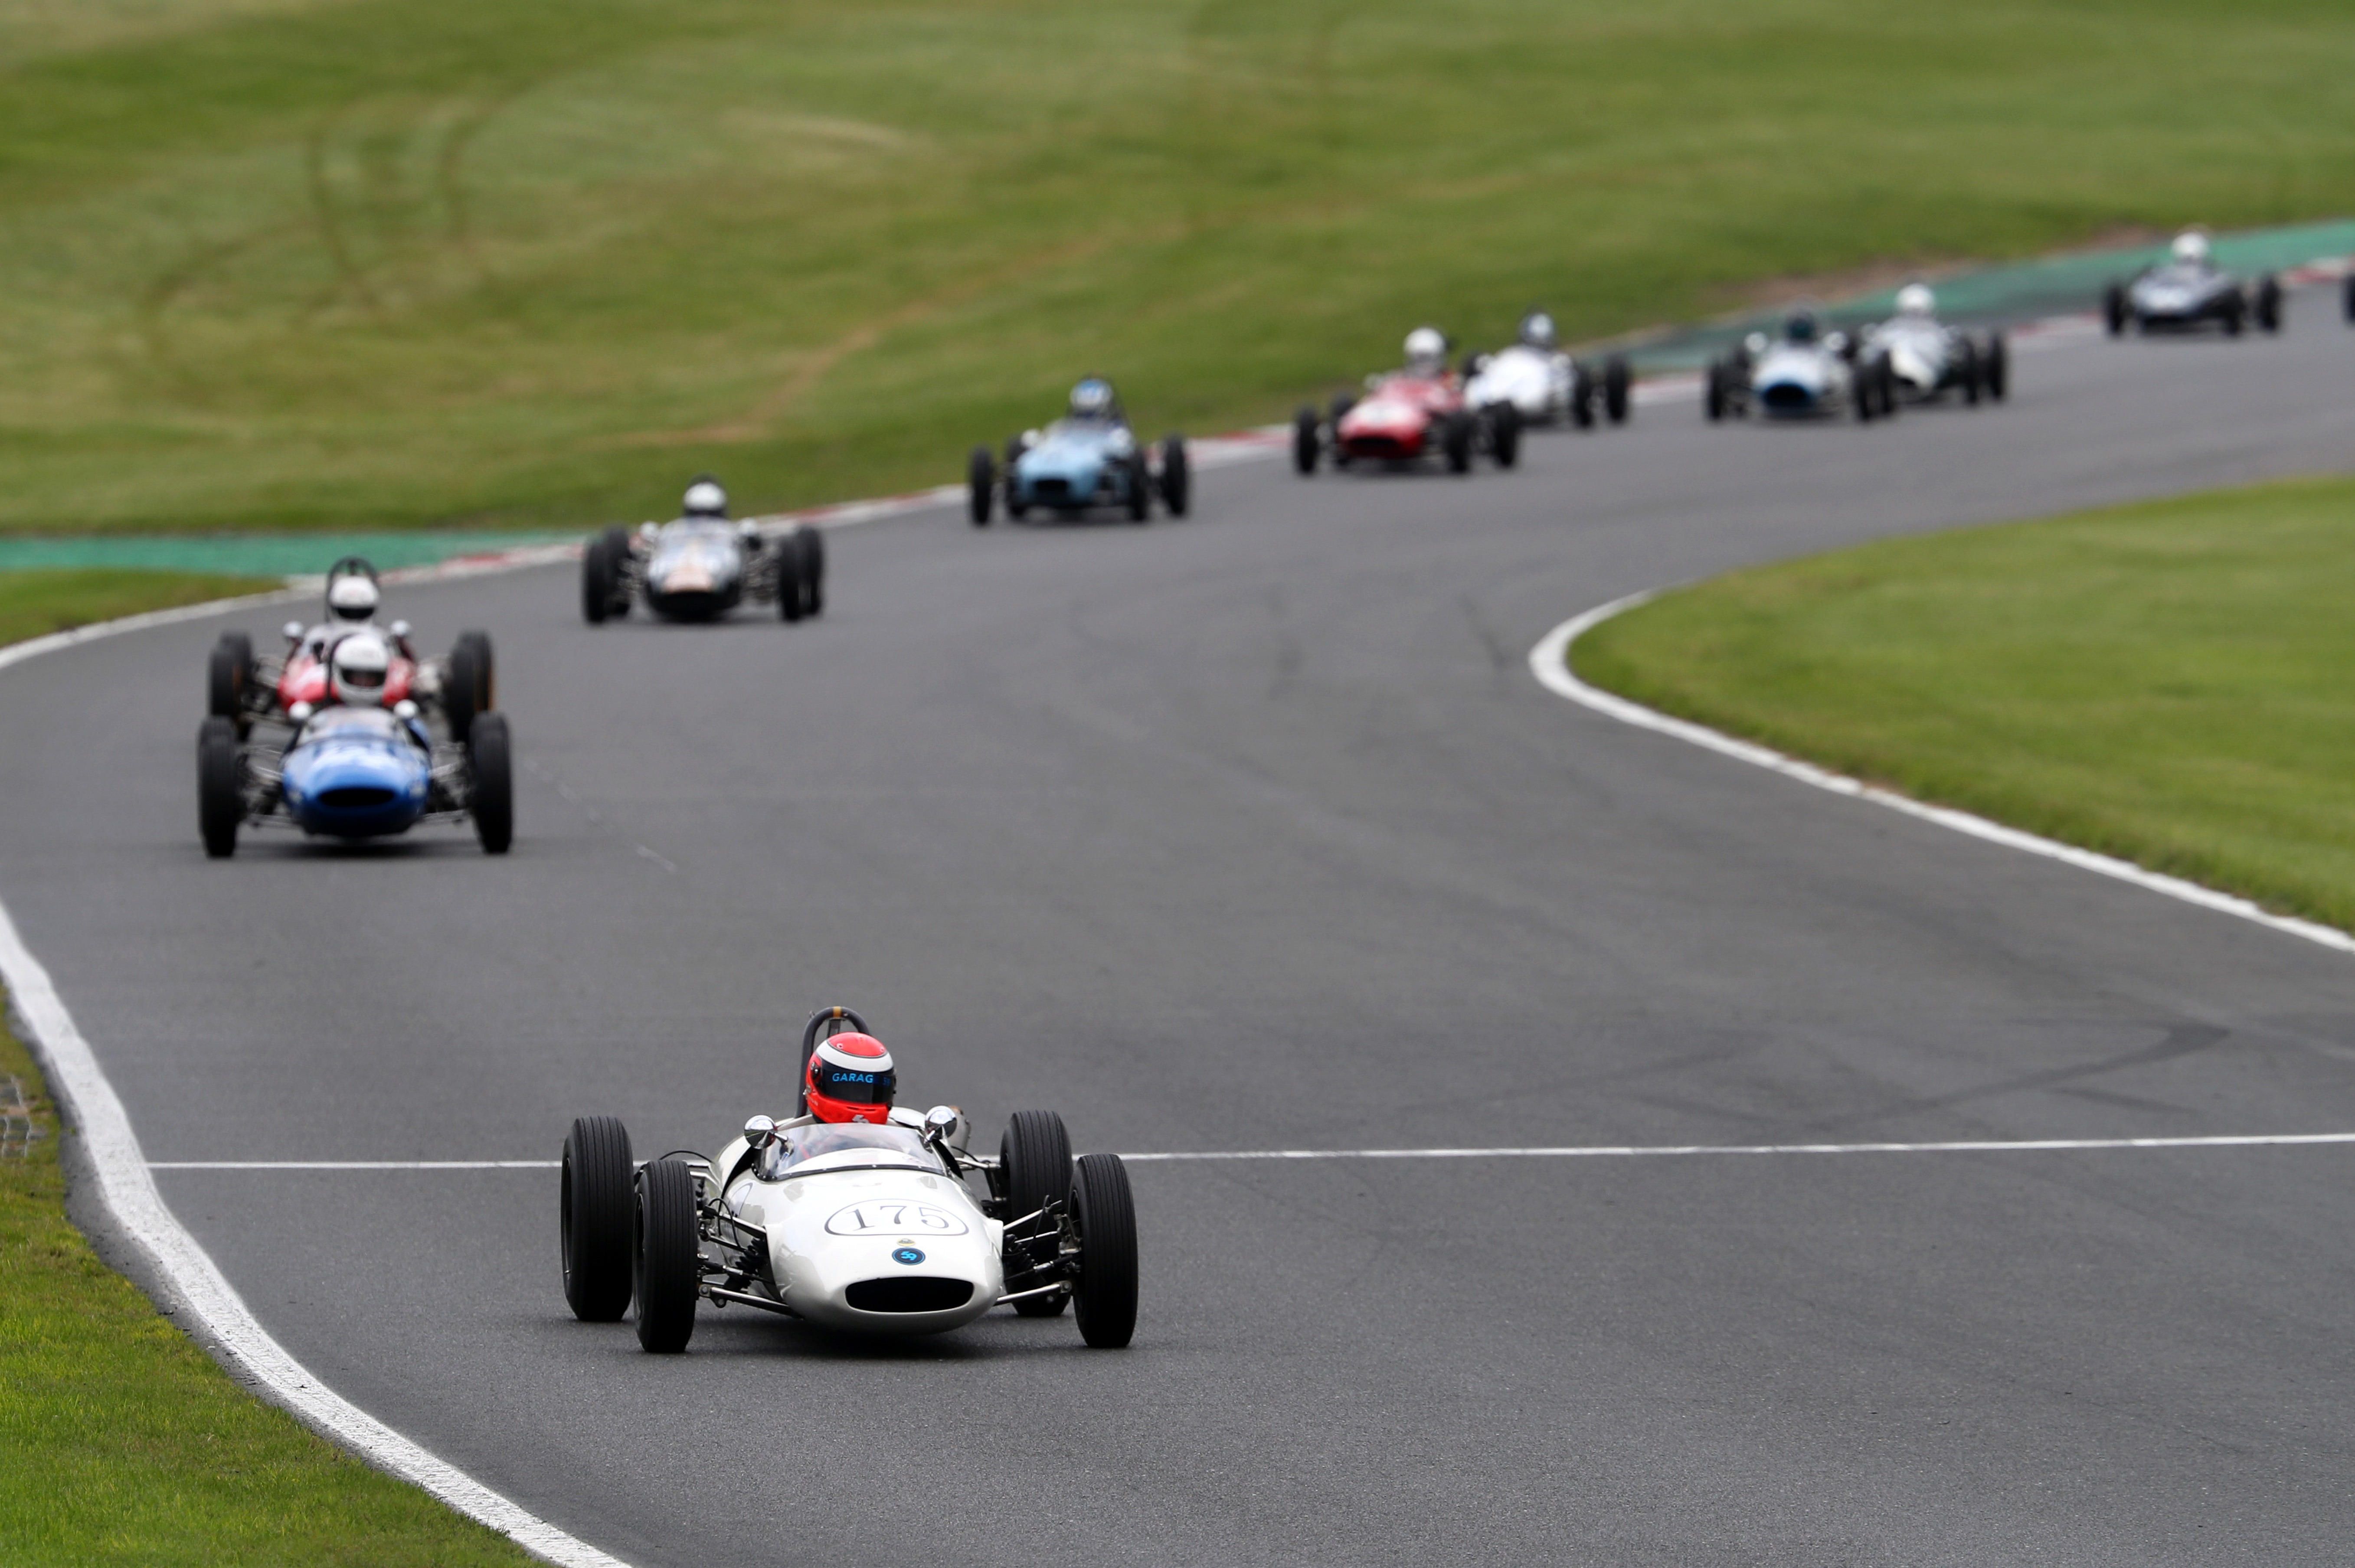 Chris Goodwin dominated the Historic Formula Junior bout in his Lotus 22